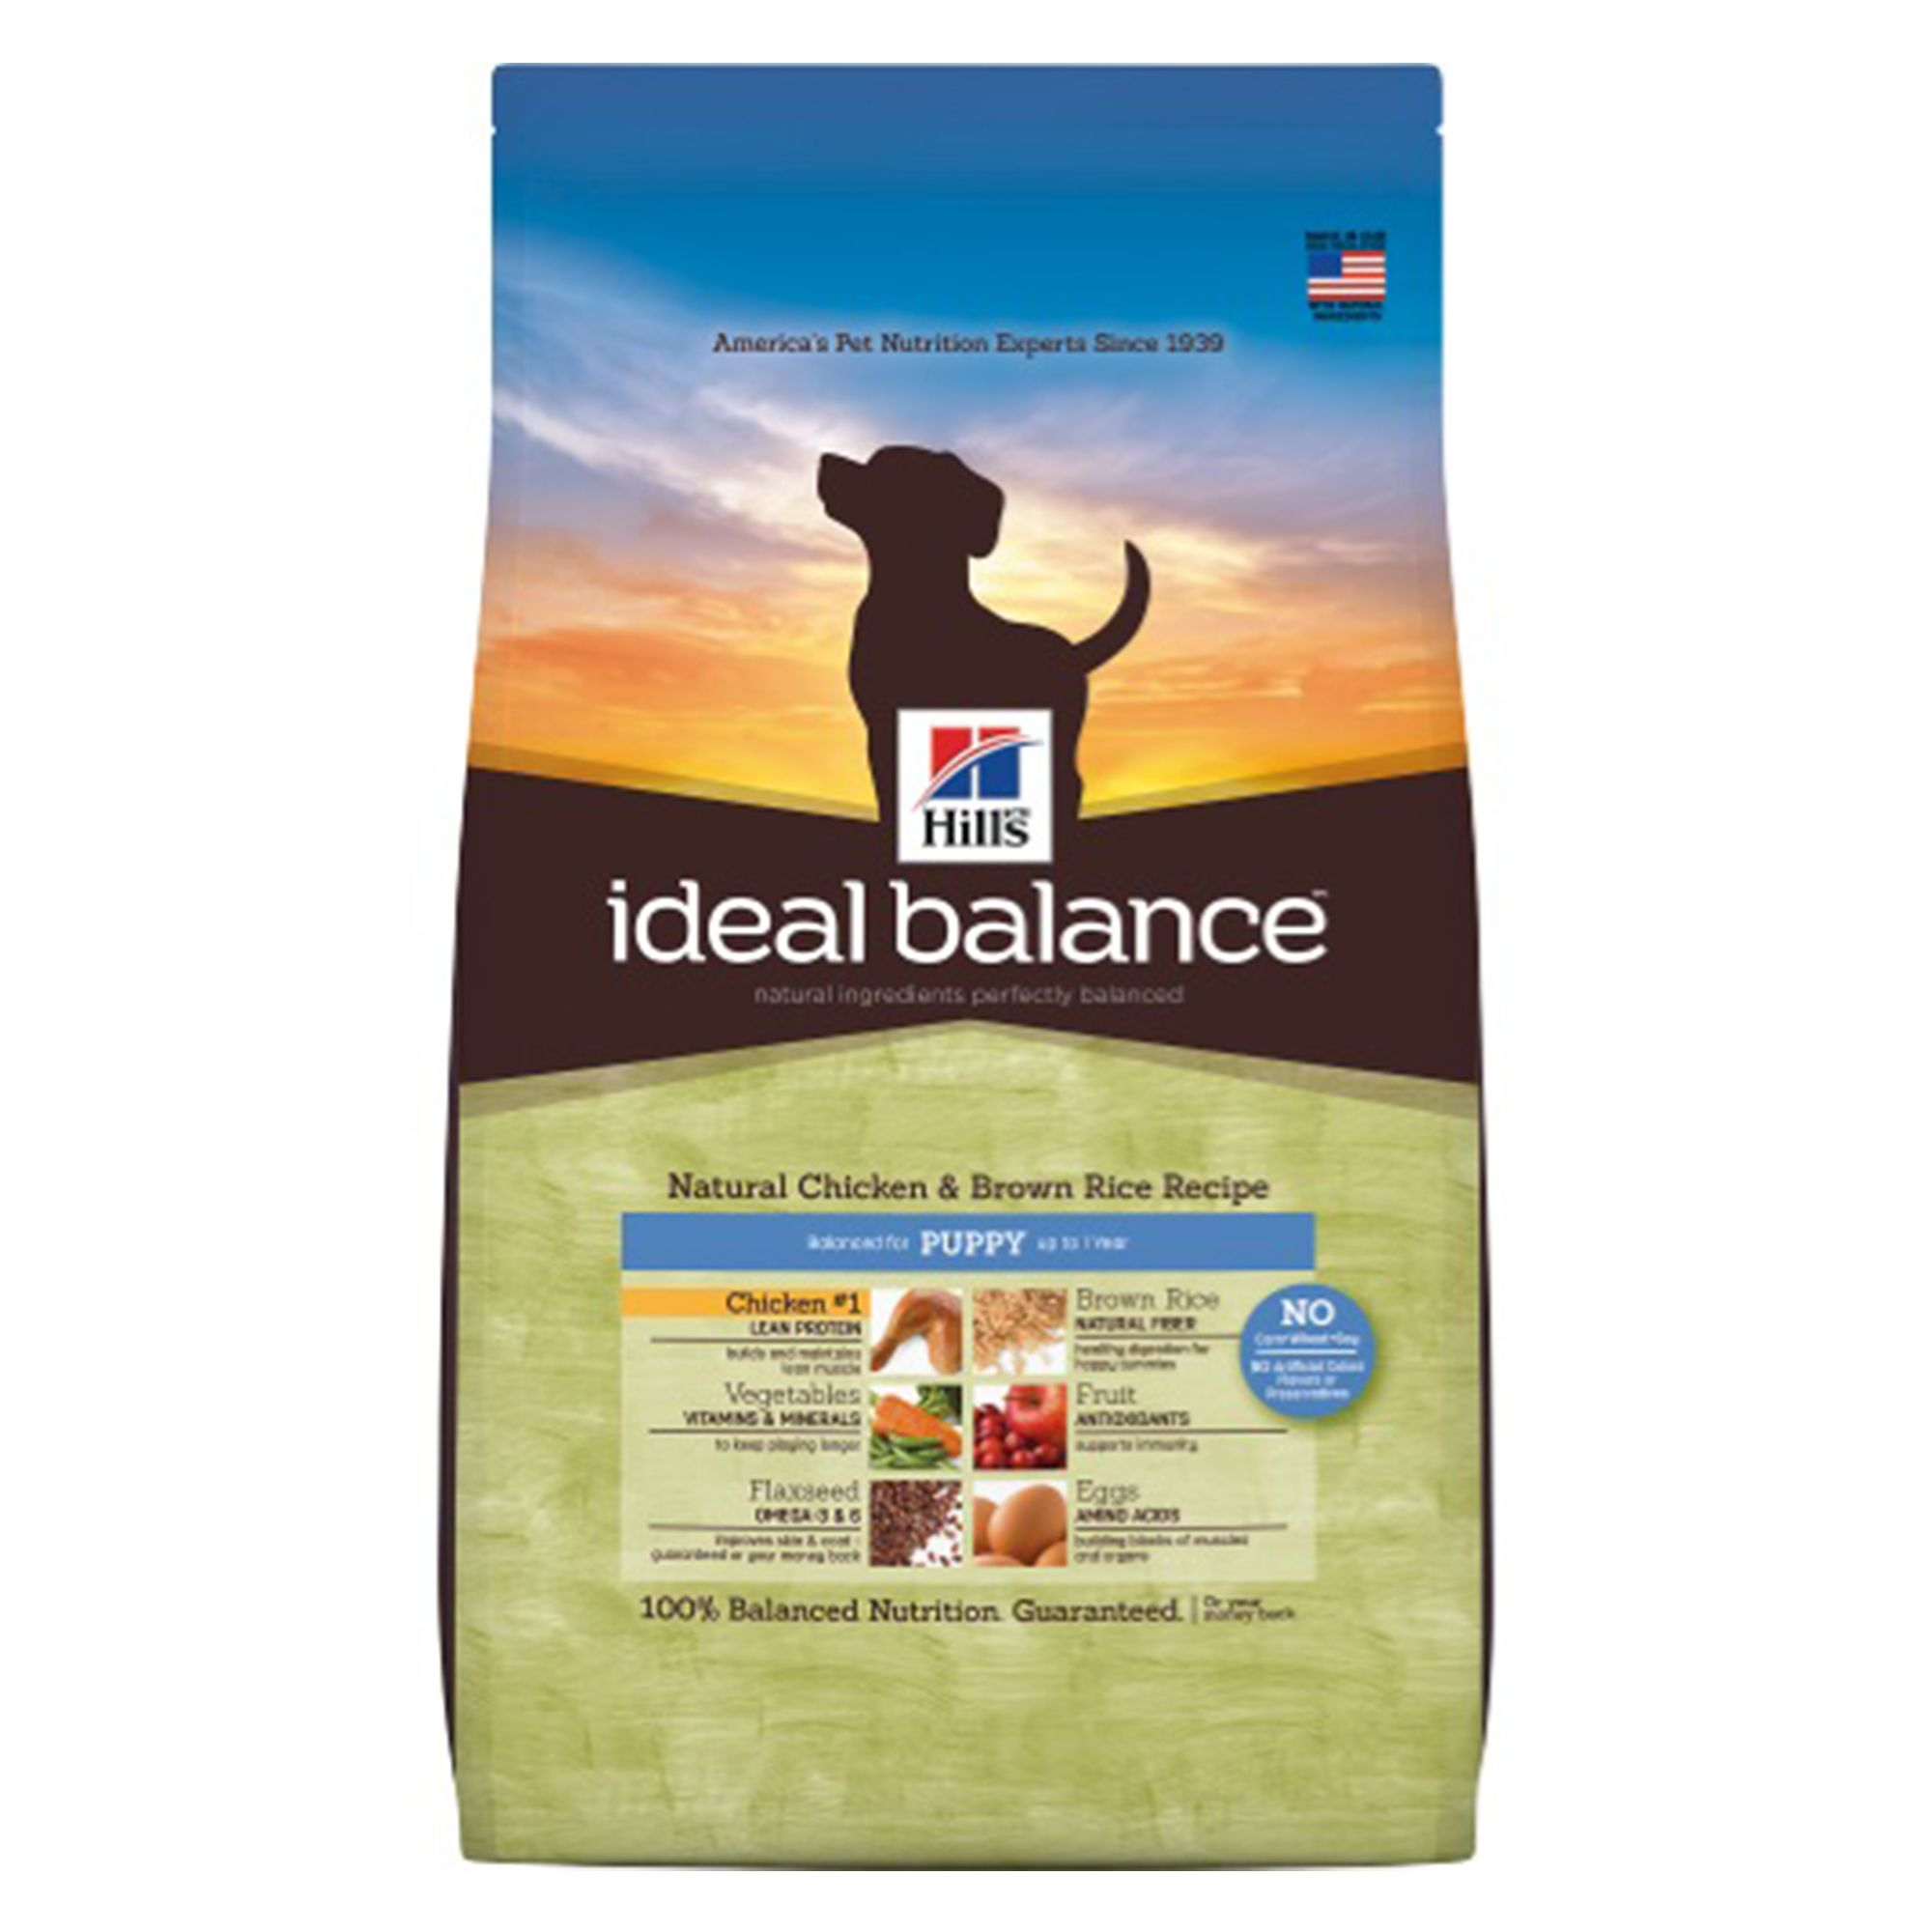 Hill's Ideal Balance, Puppy Dog Food size: 12.5 Lb, Chicken, Kibble, Balanced for puppies up to 1 year old and pregnant or nursing dogs. 5194309